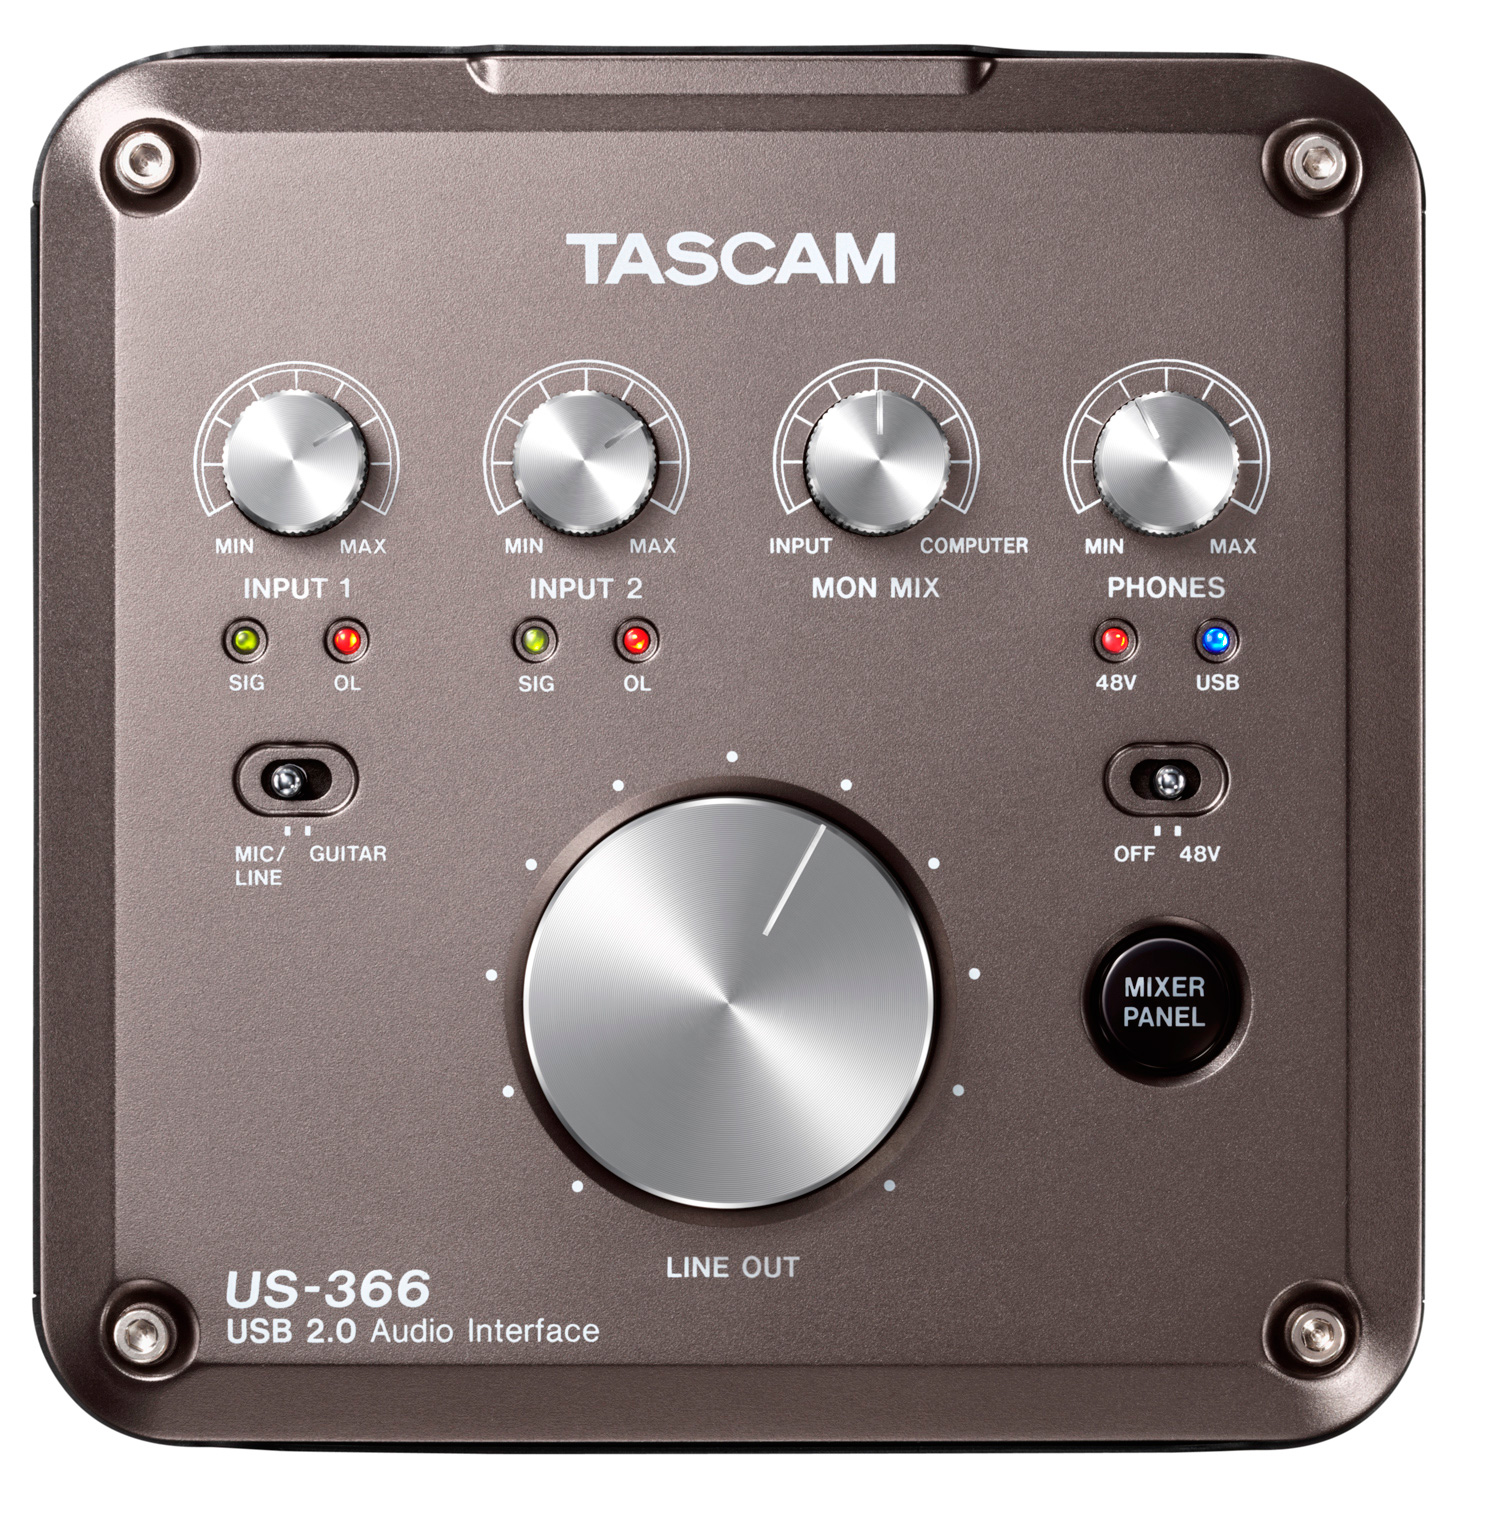 Tascam Us 366 Usb2 0 Audio Interface With Dsp Mixer